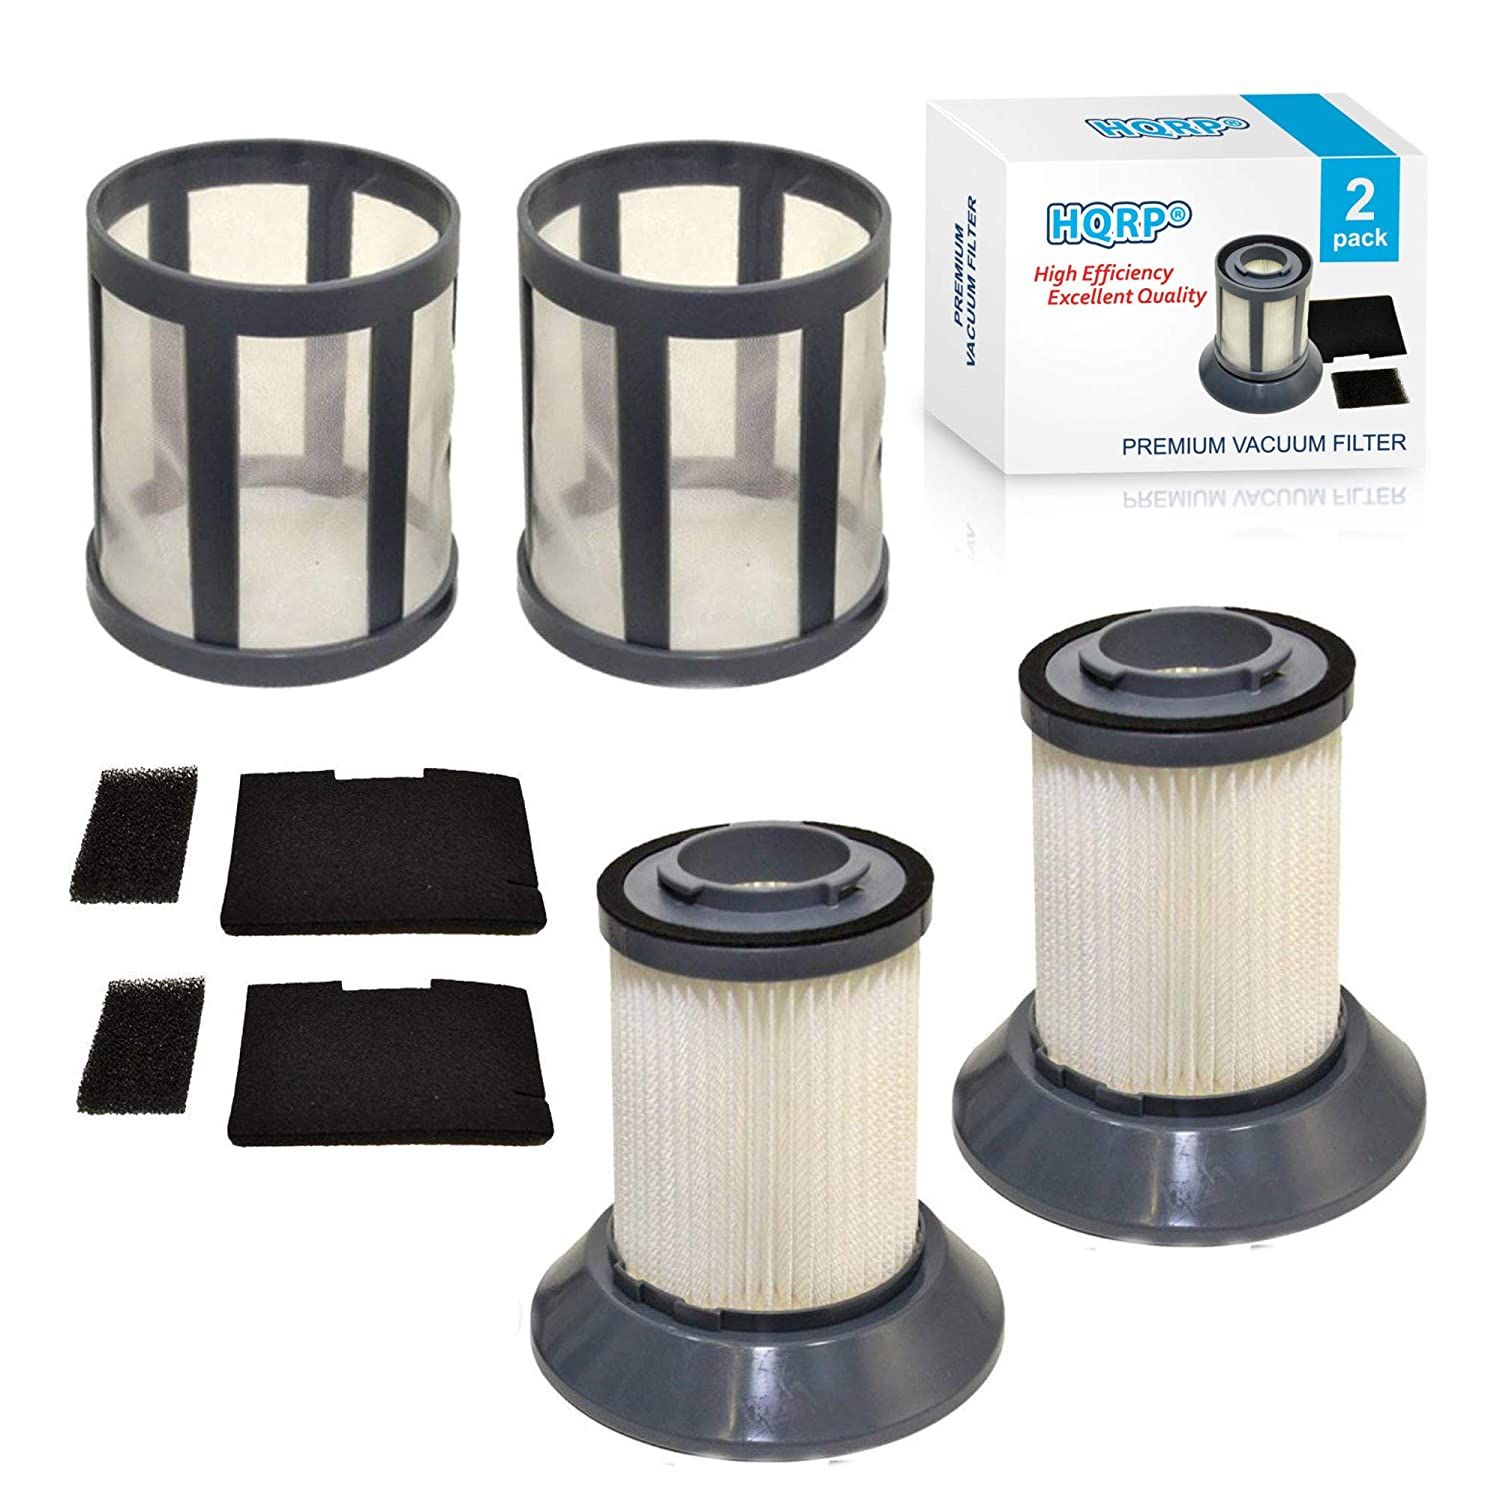 HQRP Filter Set 2-Pack for Bissel 203-1535 Post-Motor Filter, 203-1534 Pre-Motor Filter, 203-1533 Dirt Cup Filter Frame Base, Dirt Cup Filter, 203-1531 Filter Screen Vac Vacuum Cleaner + Coaster